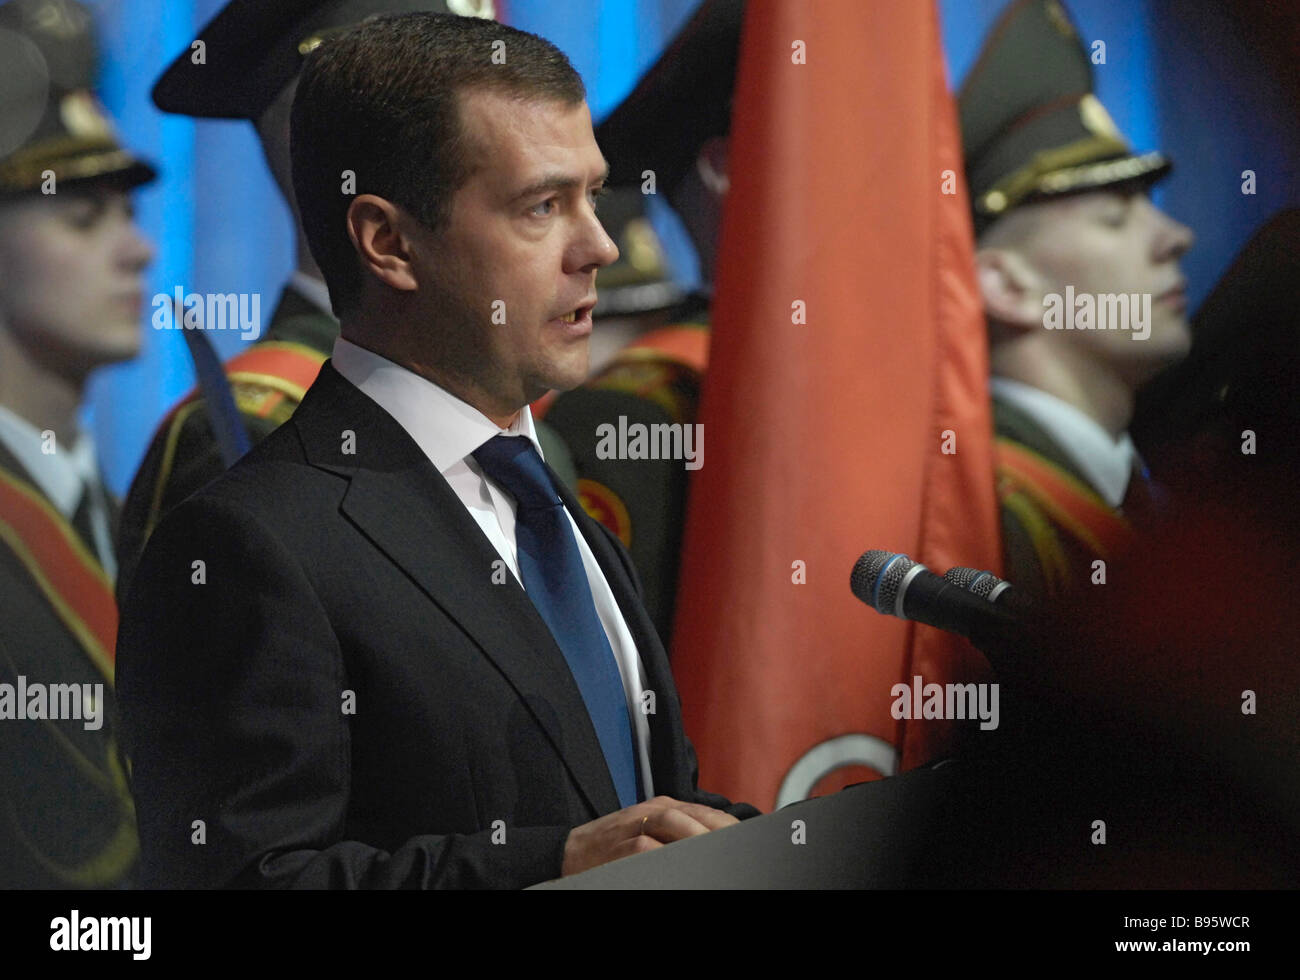 27 January 2008 Dmitry Medvedev First Deputy Chairman of the Russian government addressed the audience in the Oktyabrsky Stock Photo